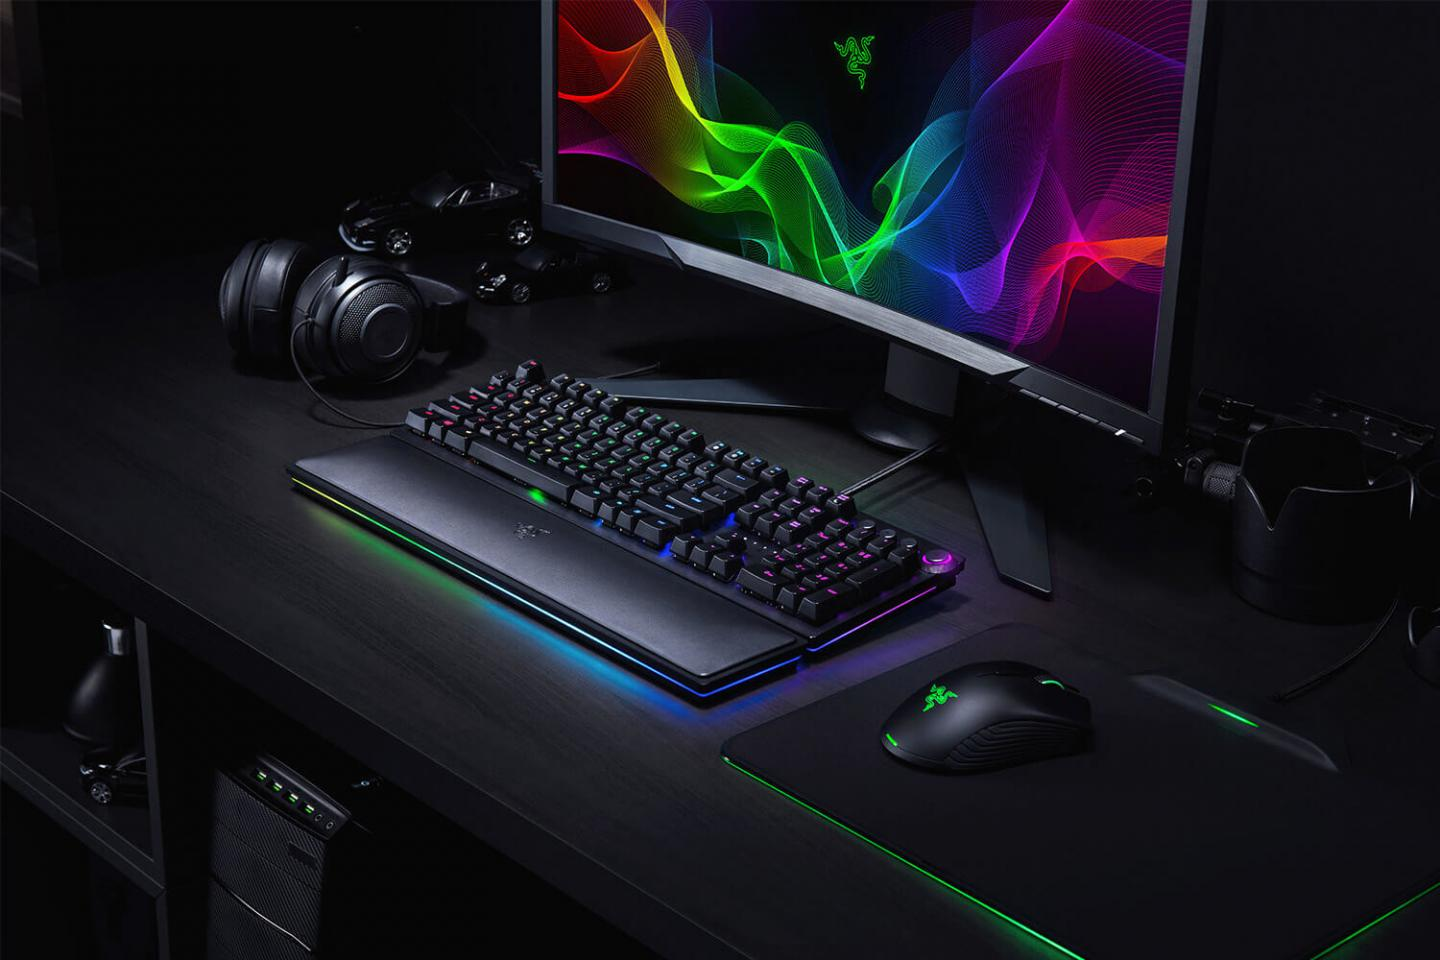 Razer Huntsman keyboard delivers gaming performance with new